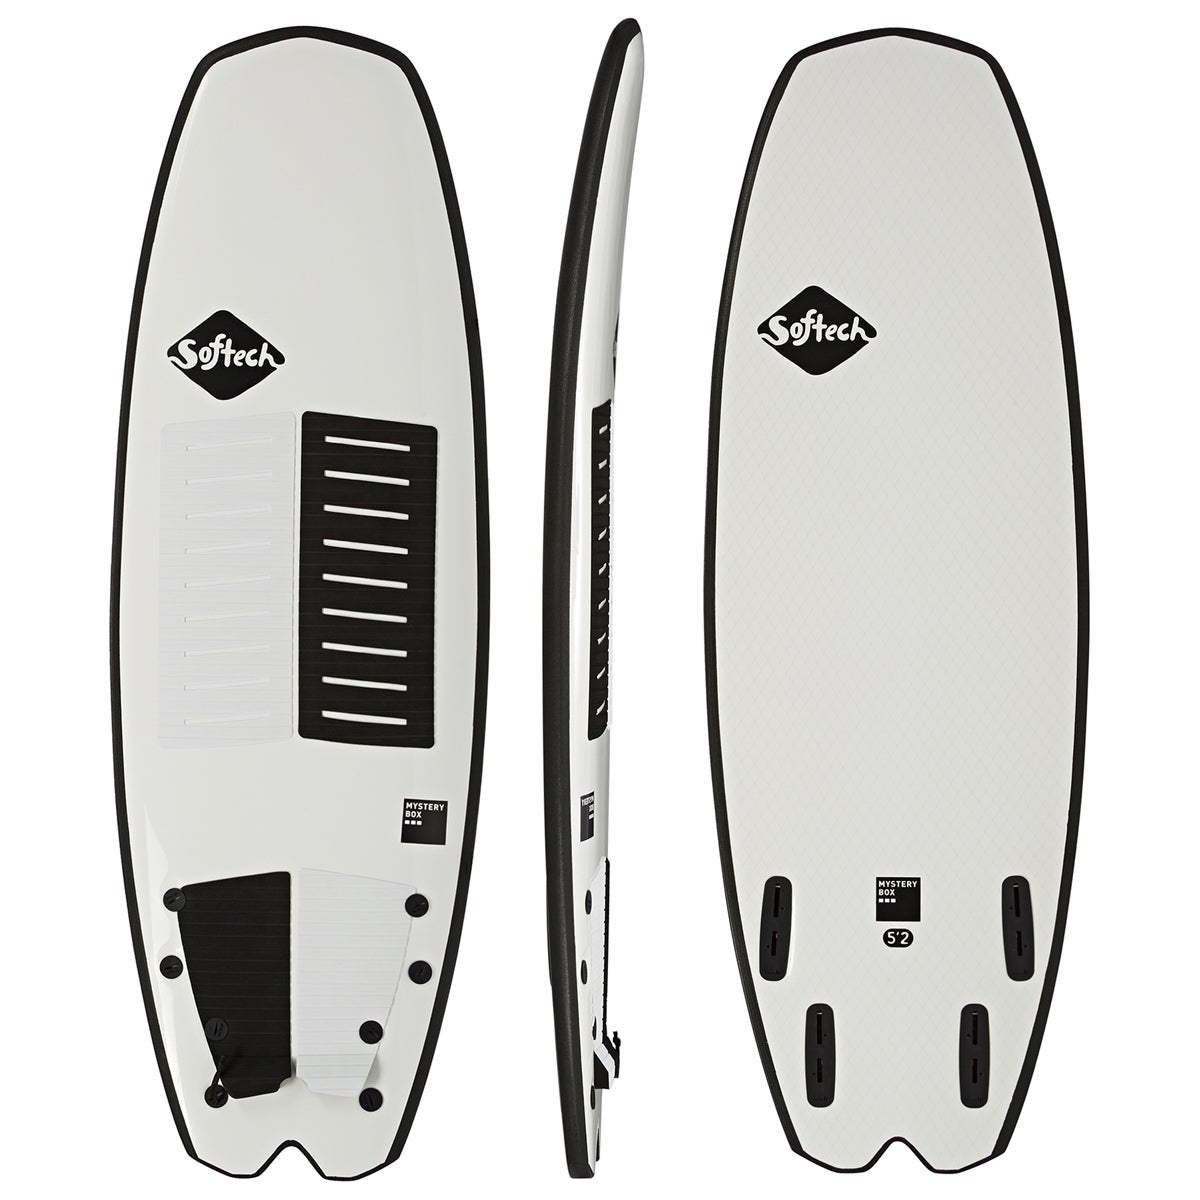 Softech Mystery Box FCS II Quad Surfboard